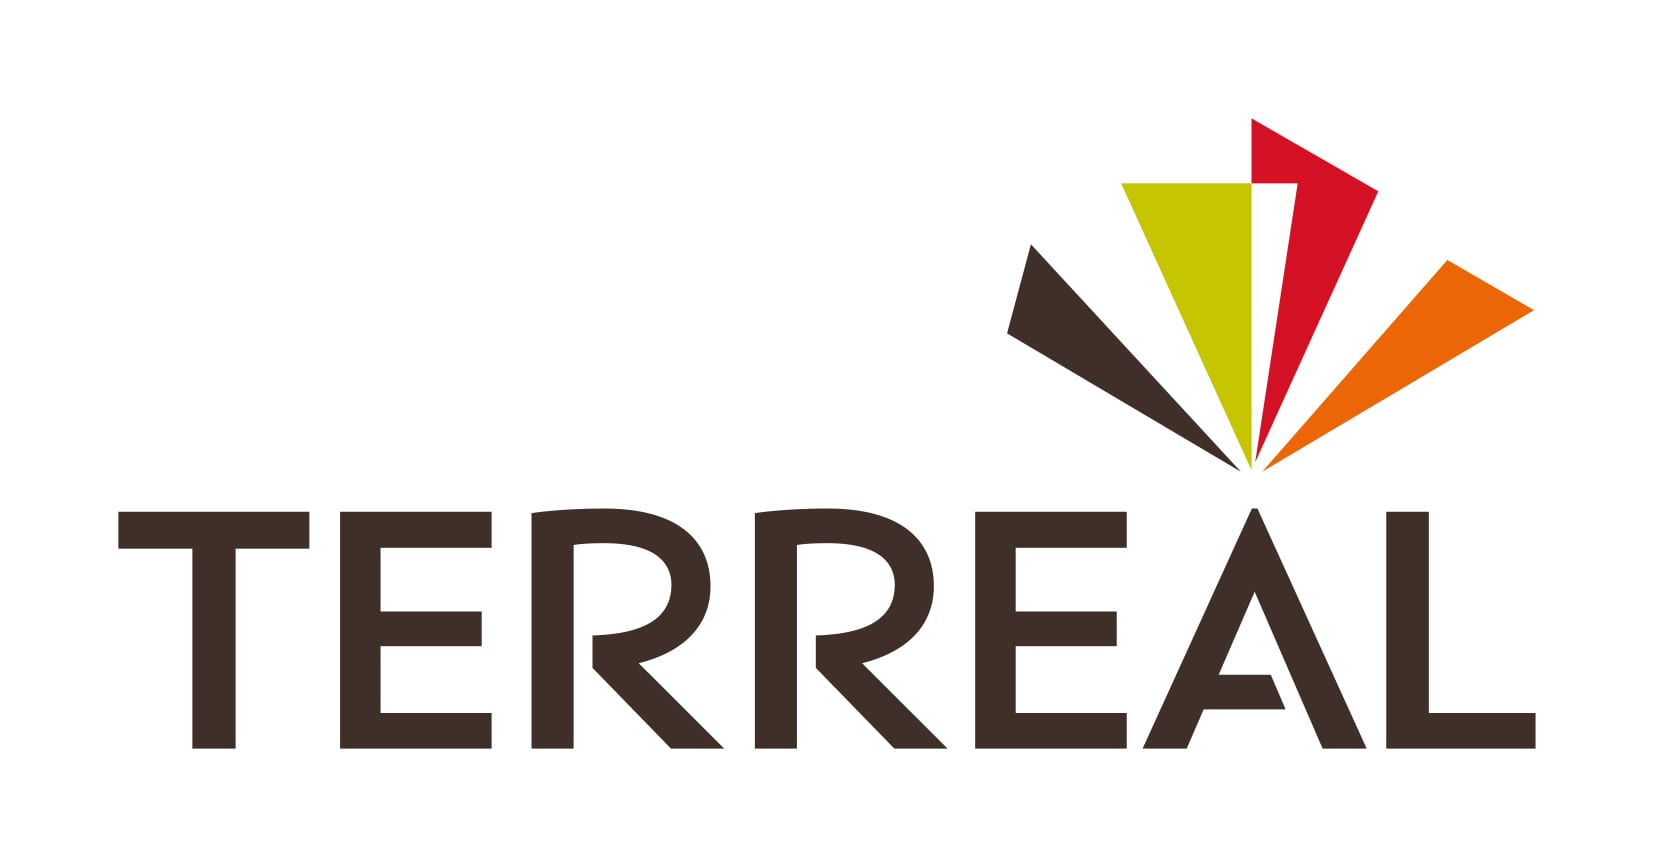 Management of Ludowici Roof Tile transferred to Terreal, another division of Saint-Gobain